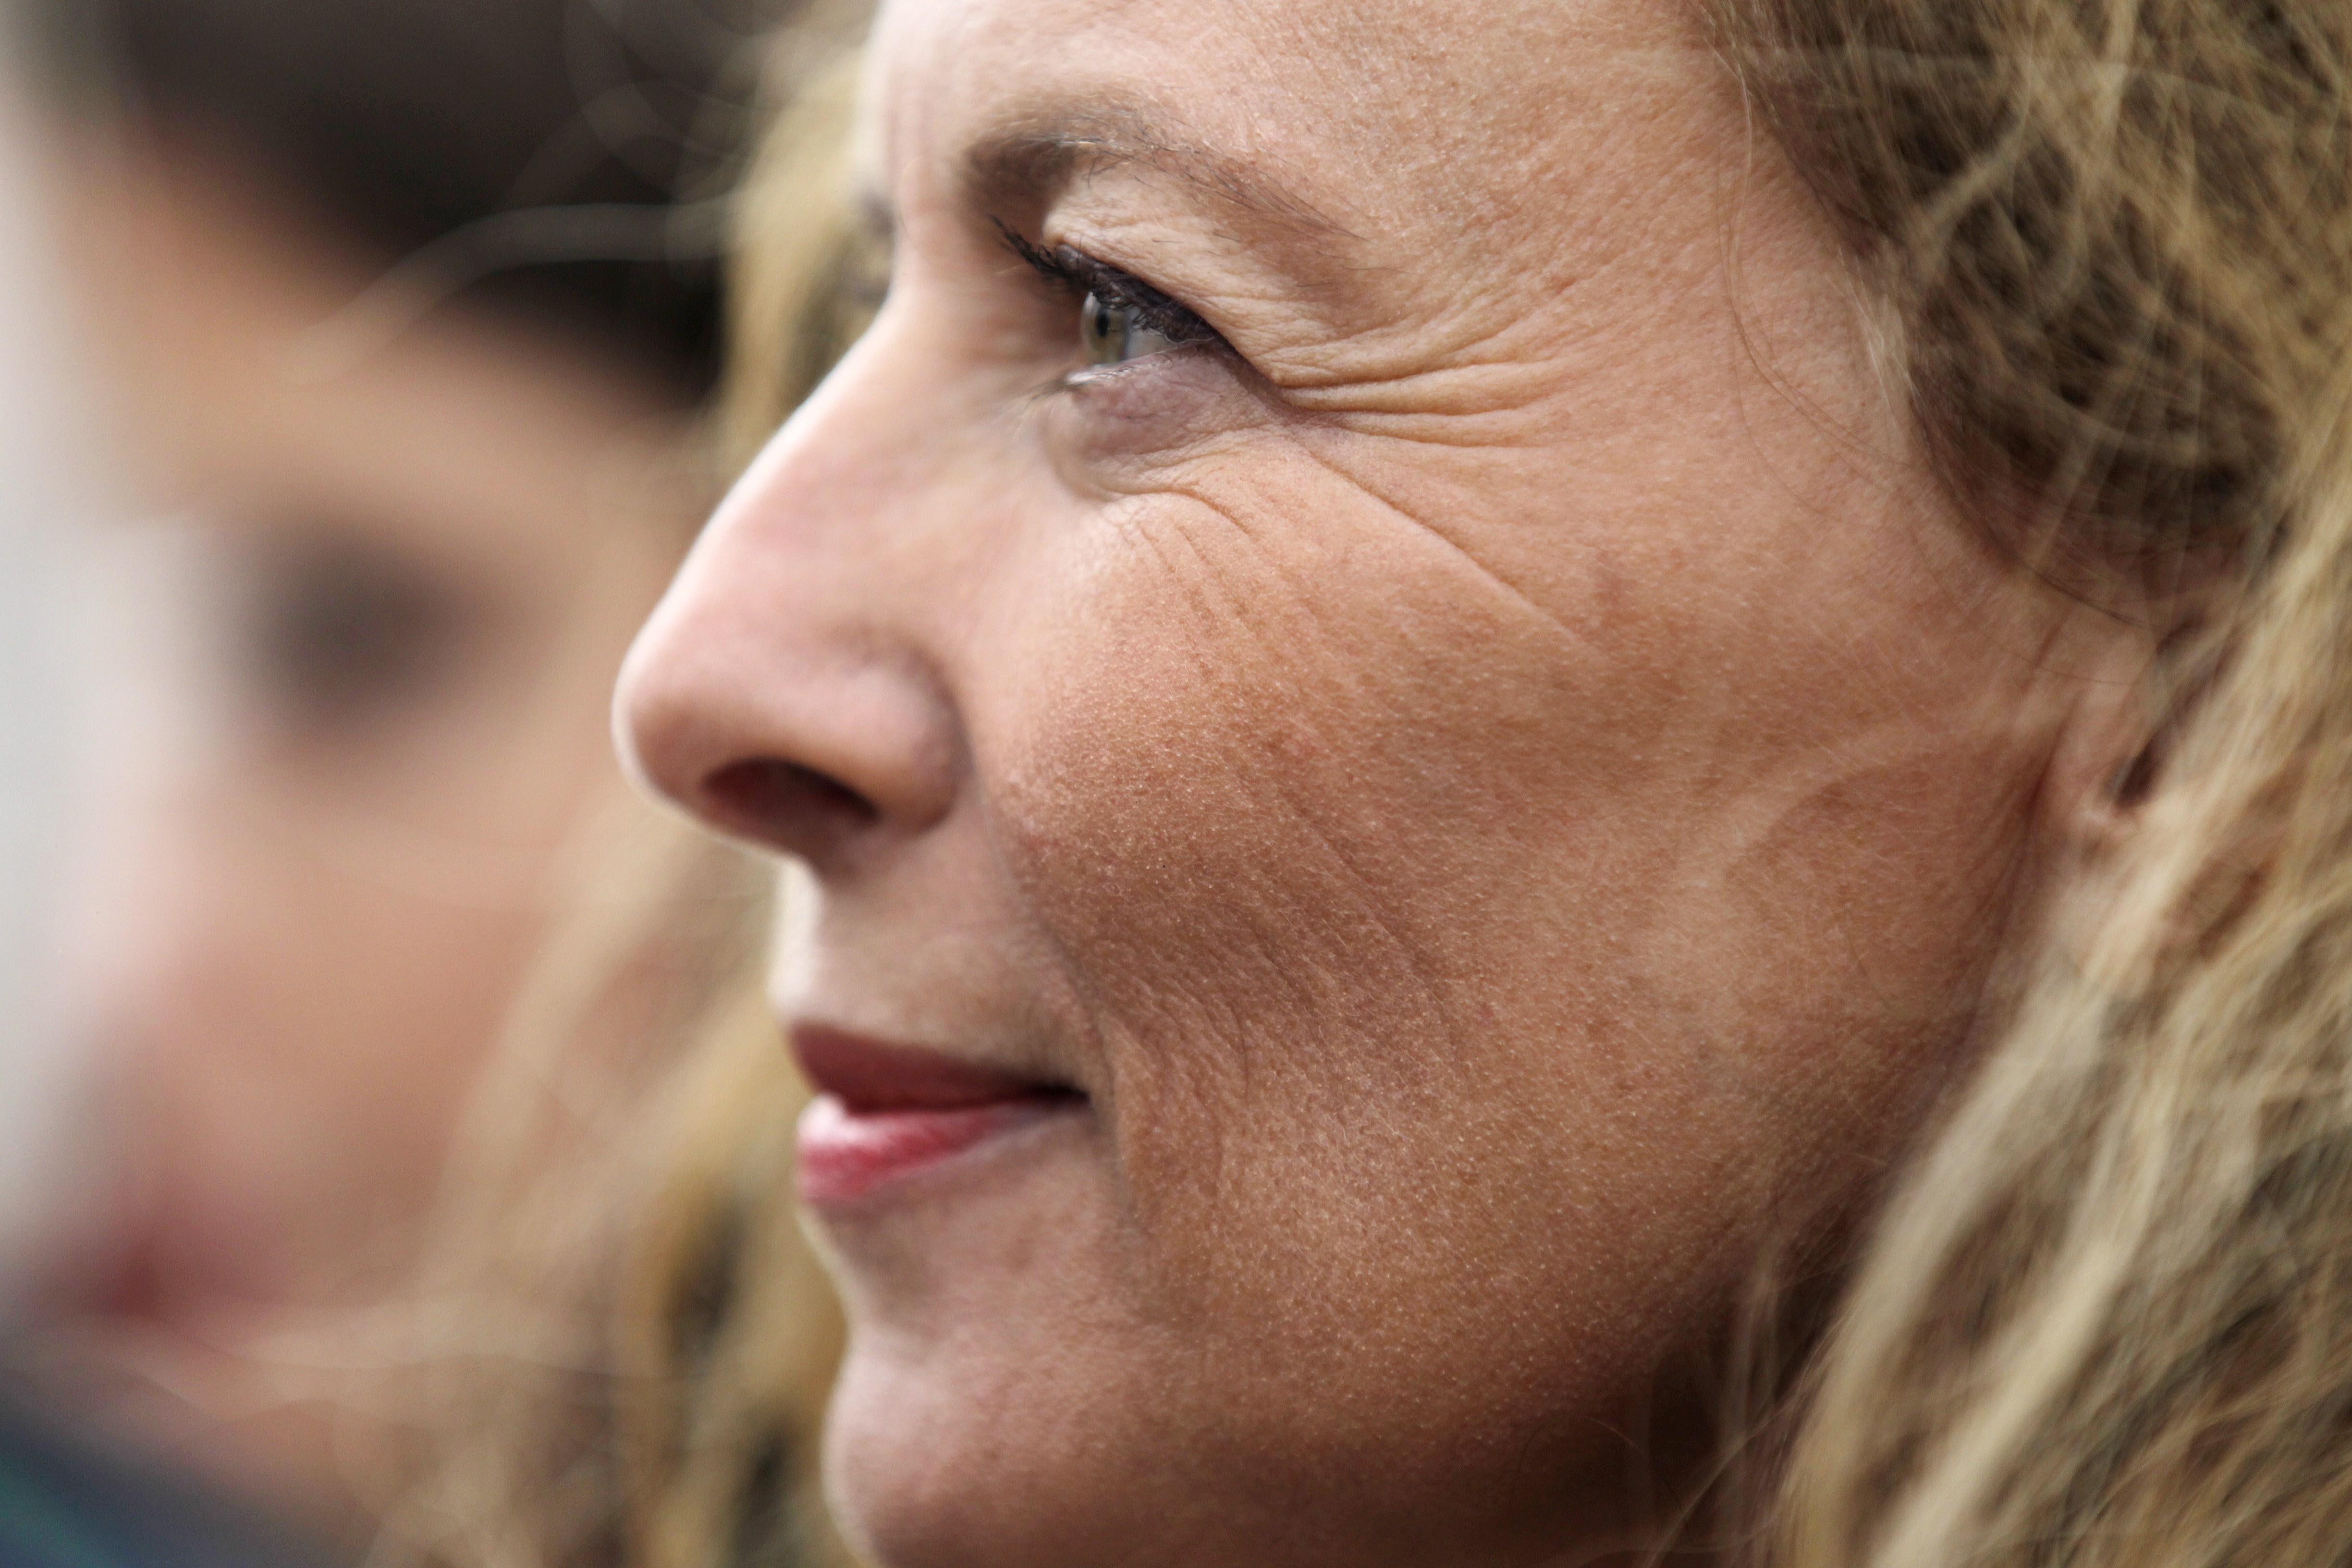 French former First lady Valerie Trierweiler is pictured on a beach in Ouistreham, northwestern France, on August 20, 2014.